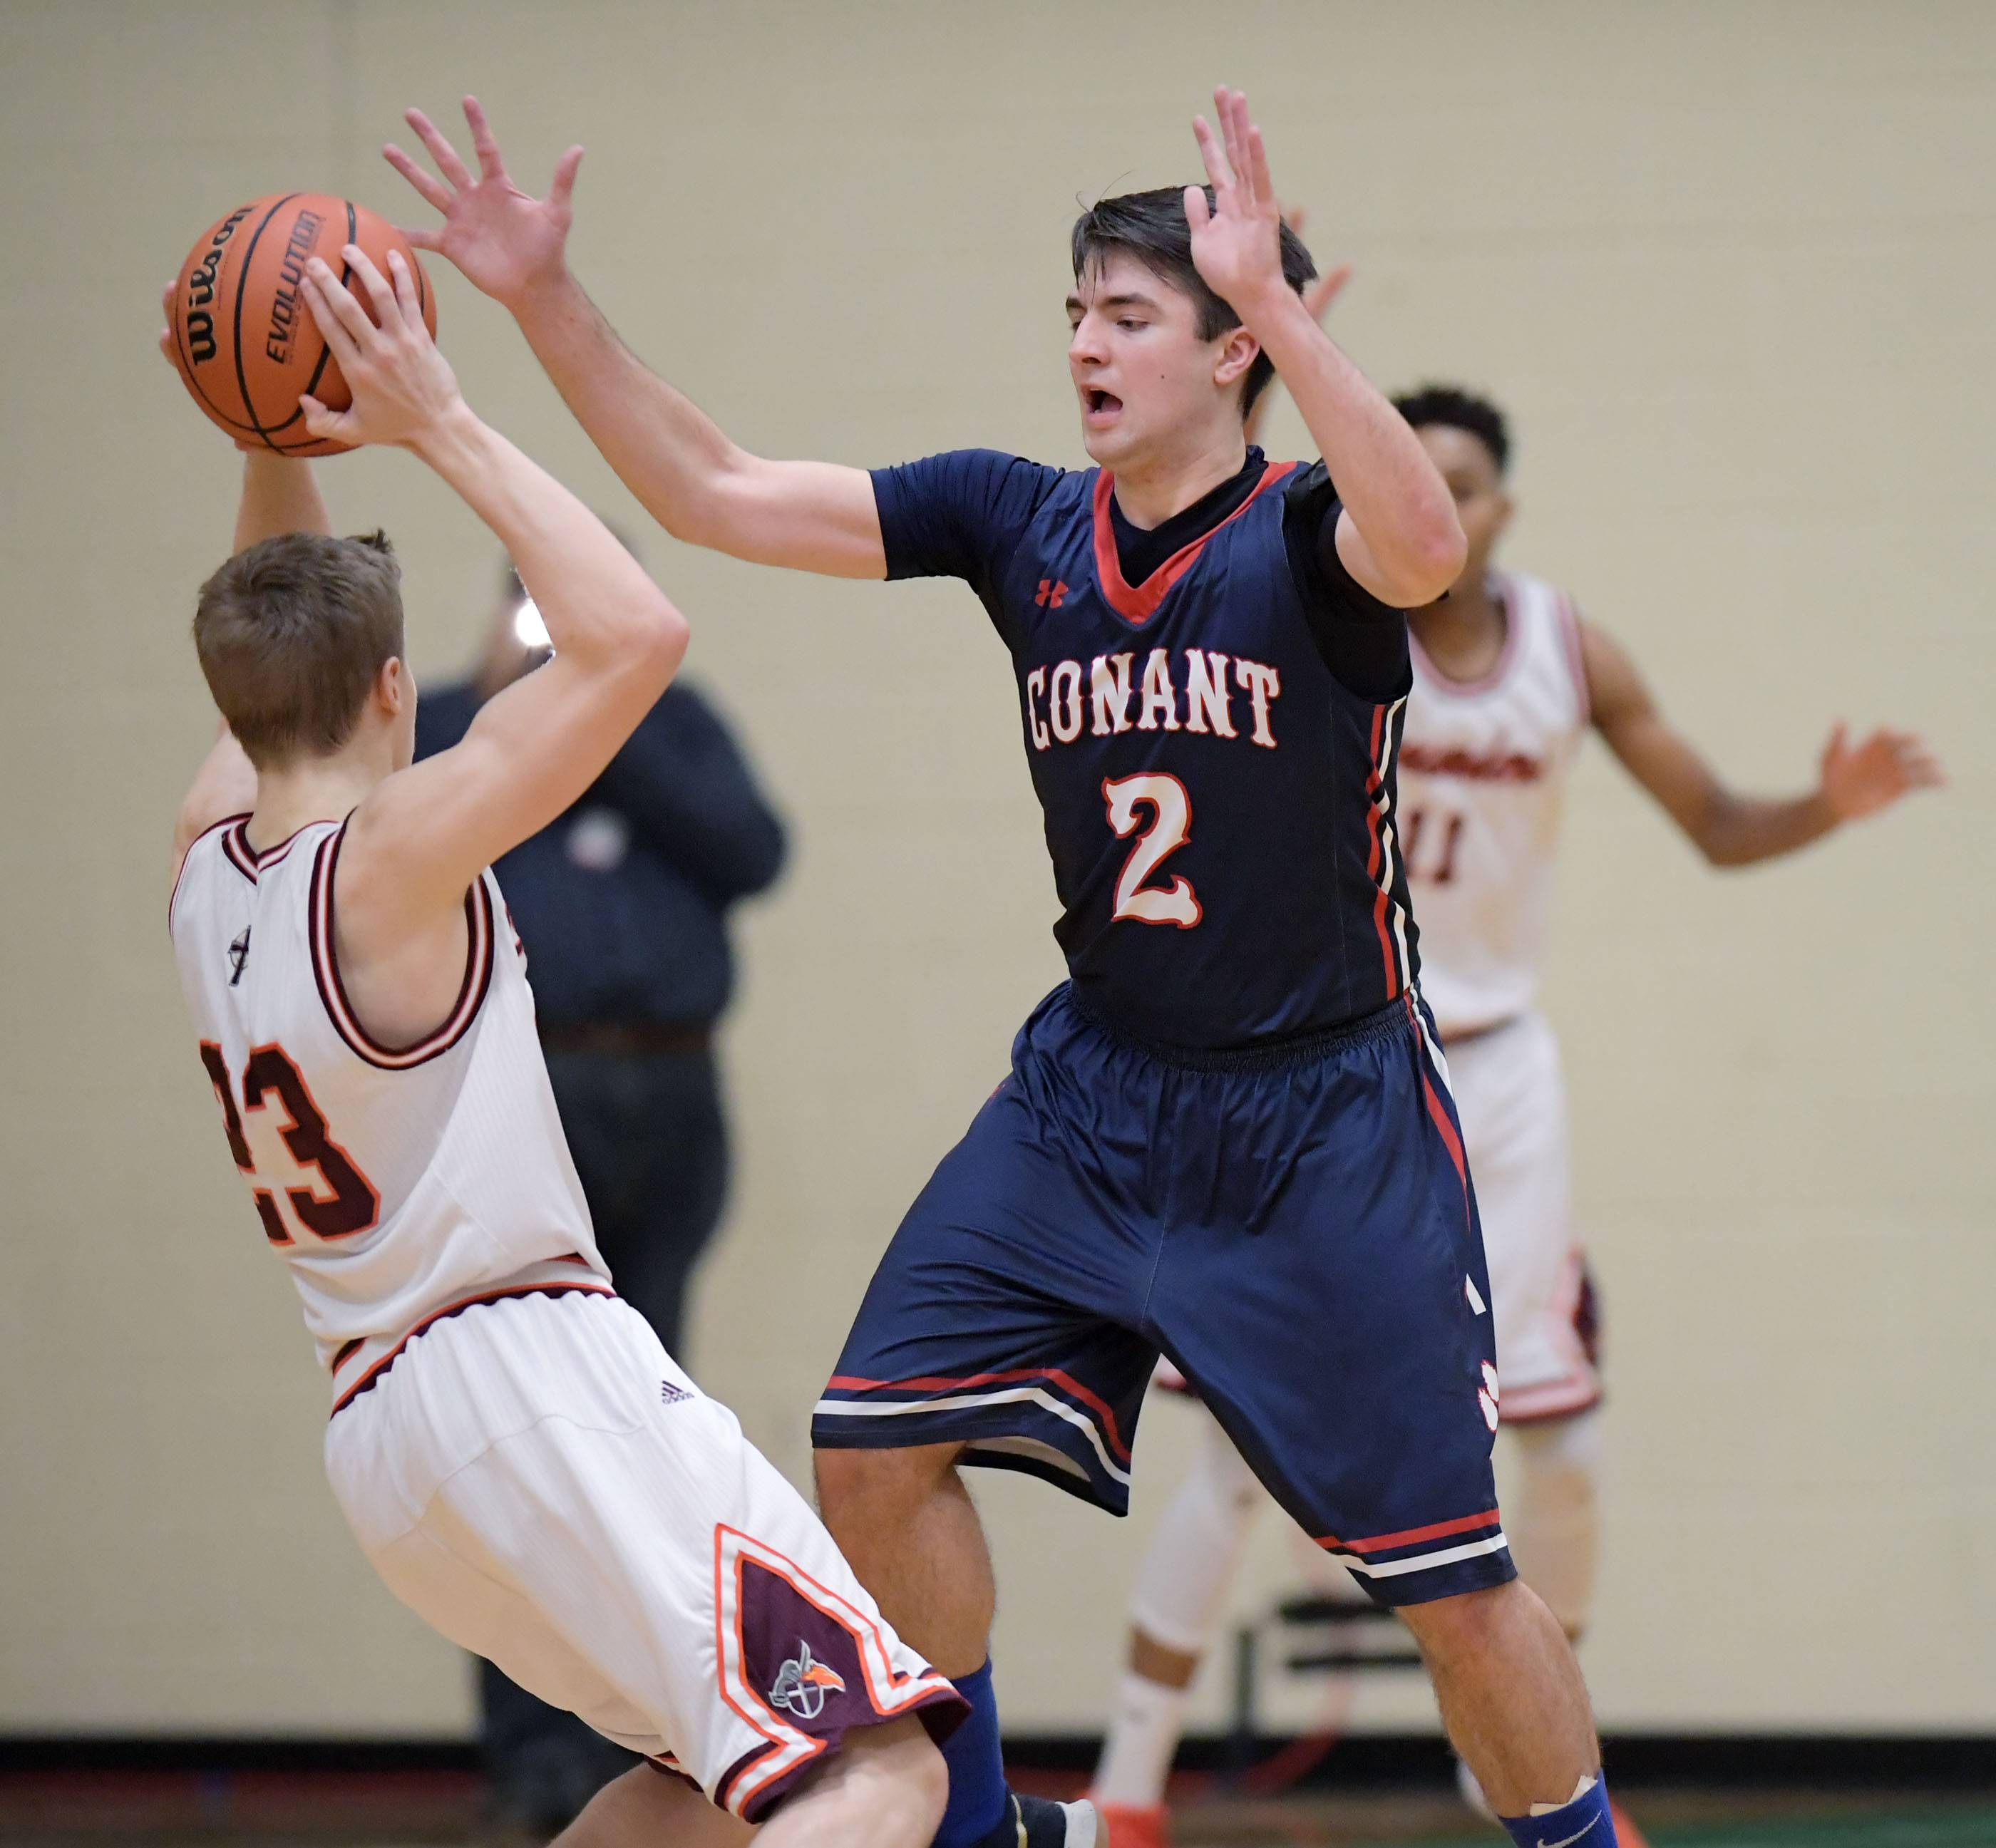 Conant's Ben Schols defends against Brother Rice's Brendan Coghlan on Saturday at York High School in Elmhurst.